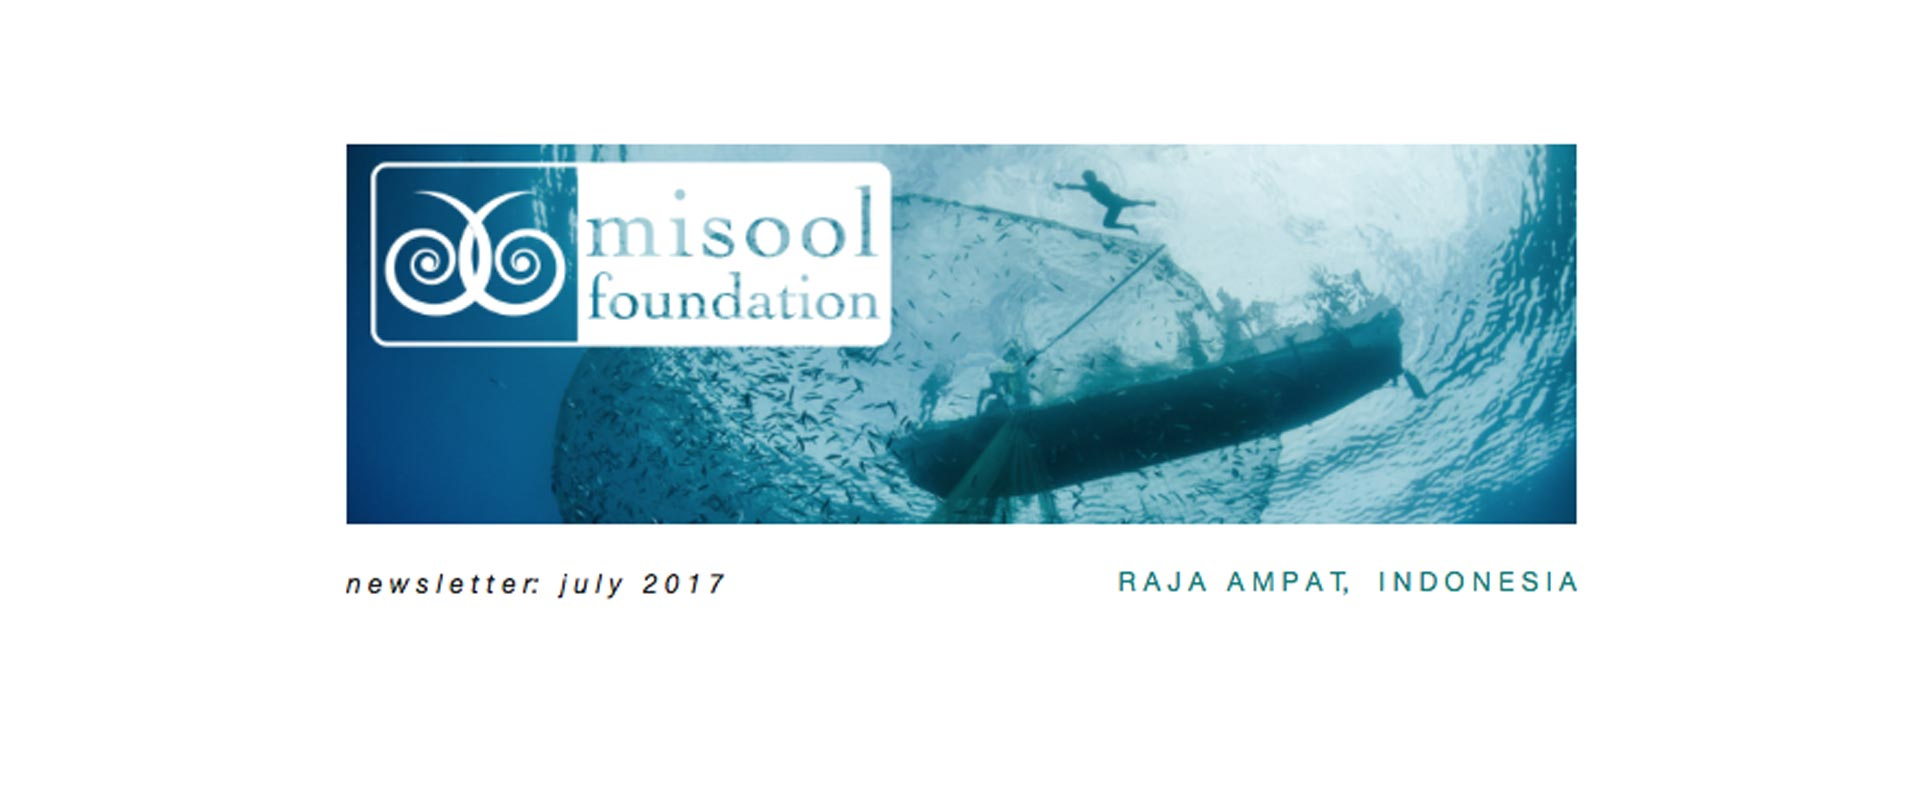 Misool-Foundation-Header